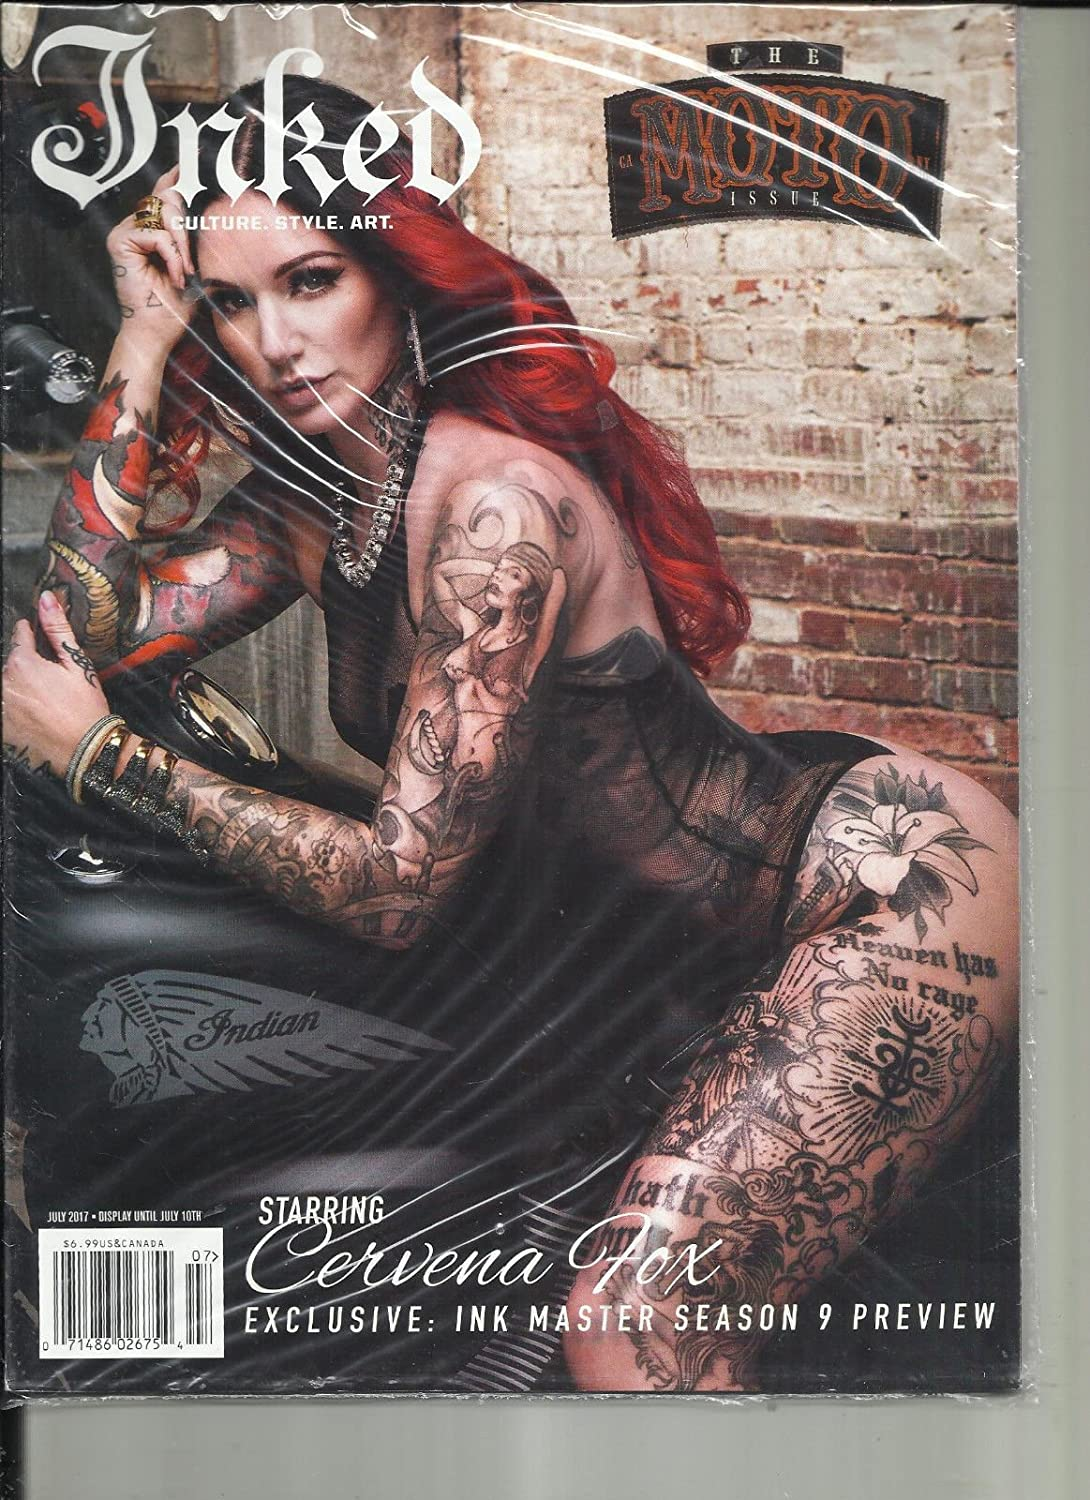 INKED MAGAZINE, THE MOTO ISSUE CULTURE * STYLE * ART JULY, 2017 ISSUE, 85 s3457